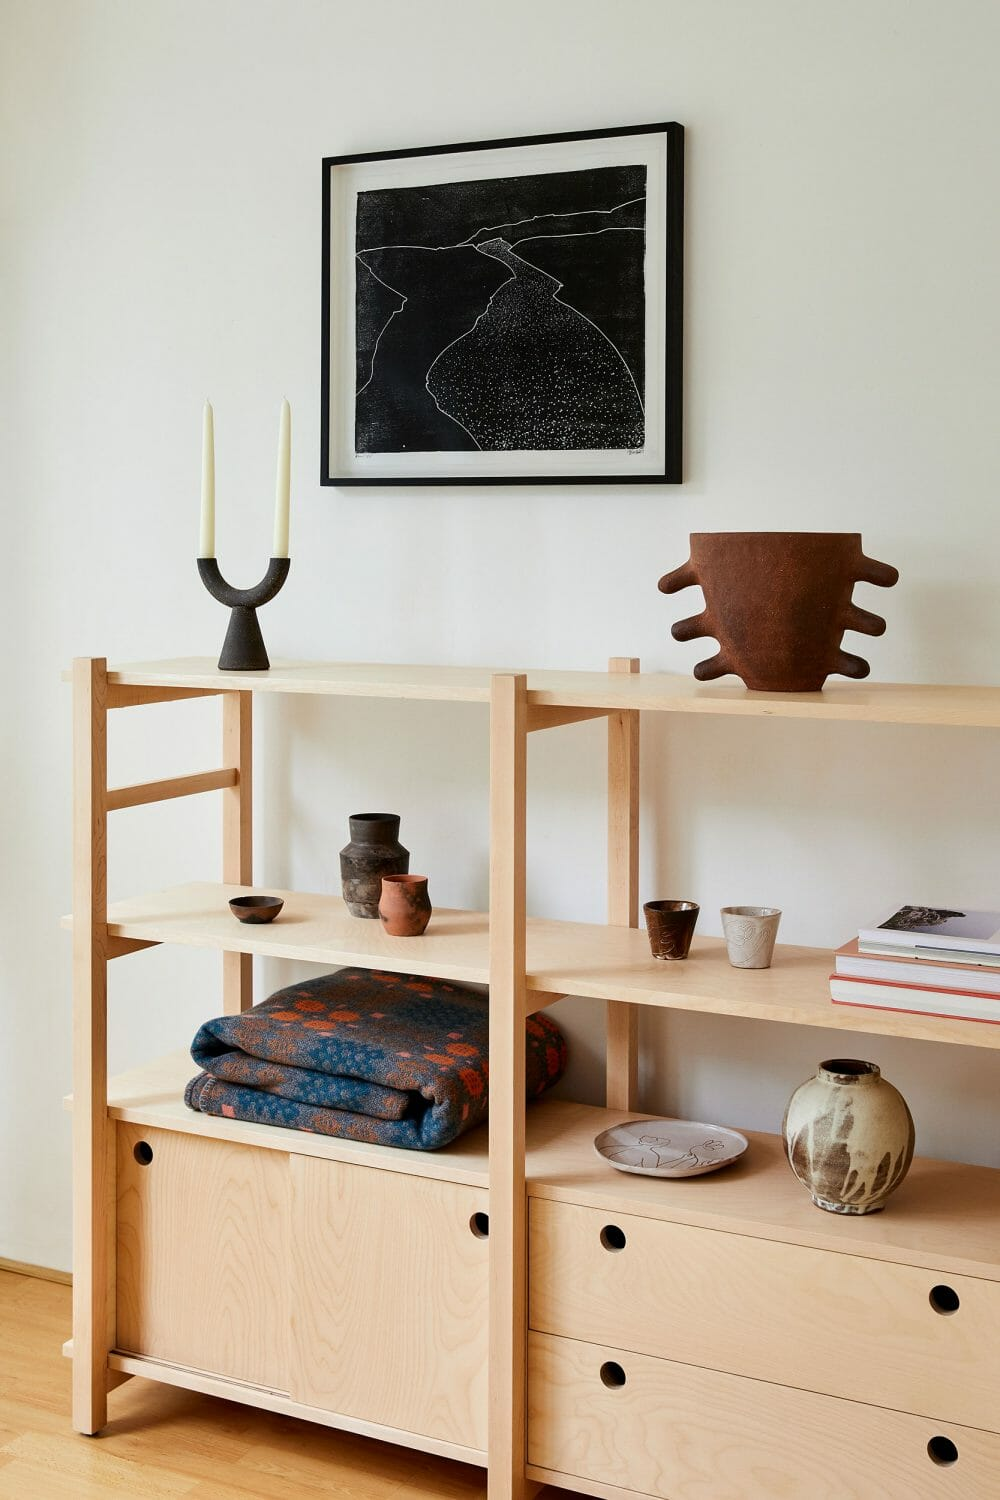 lifestyle-artists-objects-makers-interiors-ceramics